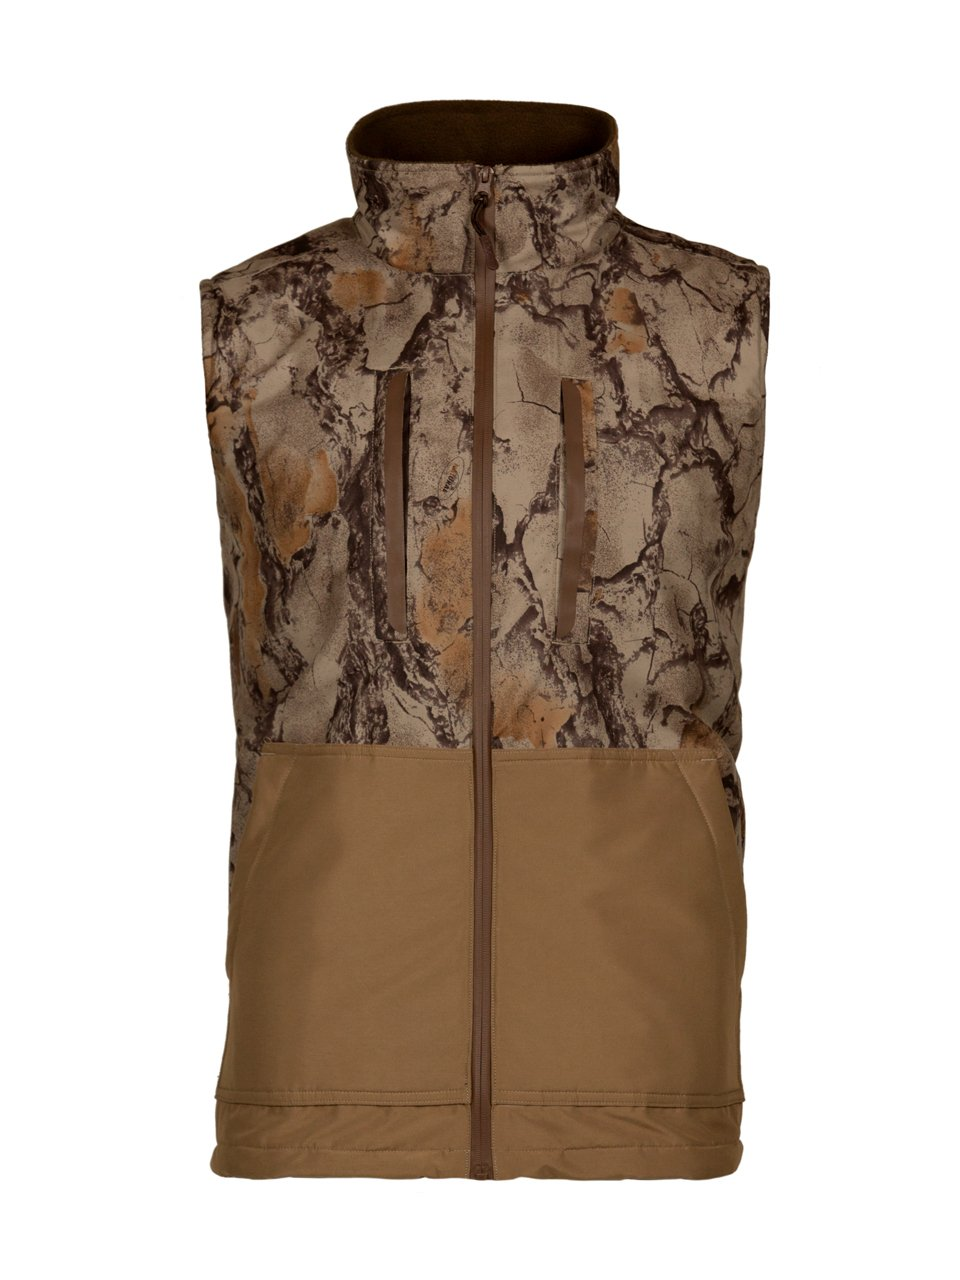 Natural Gear Camo Waterfowl Vest, Waterproof Hunting Vest for Women and Men with Fleece Lining, 100% Dri Stalk Material (XXX-Large) by Natural Gear